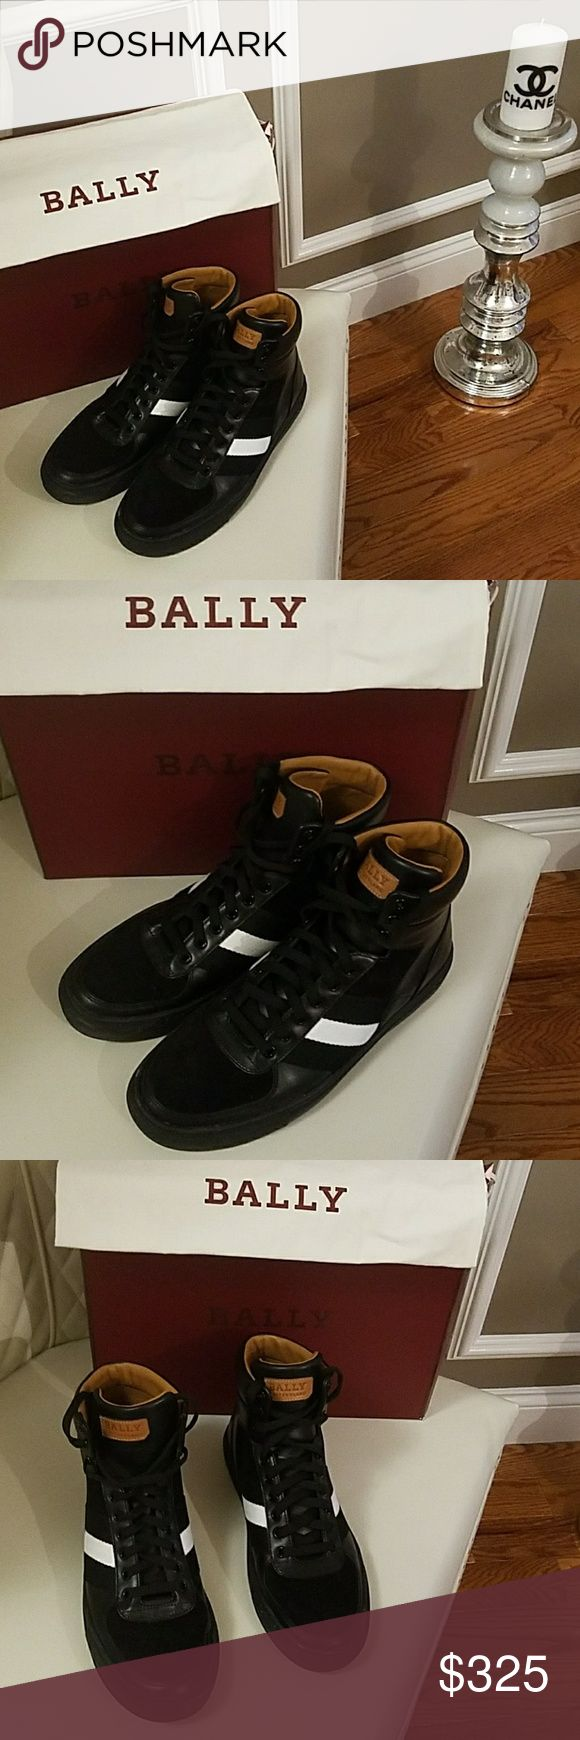 Mens Bally Black Sneakers Shoes US size 9 EUR 42 Retail $525 Mens Bally Black Sneakers Shoes US size 9 In mint like new condition wore it once Bally Shoes Athletic Shoes